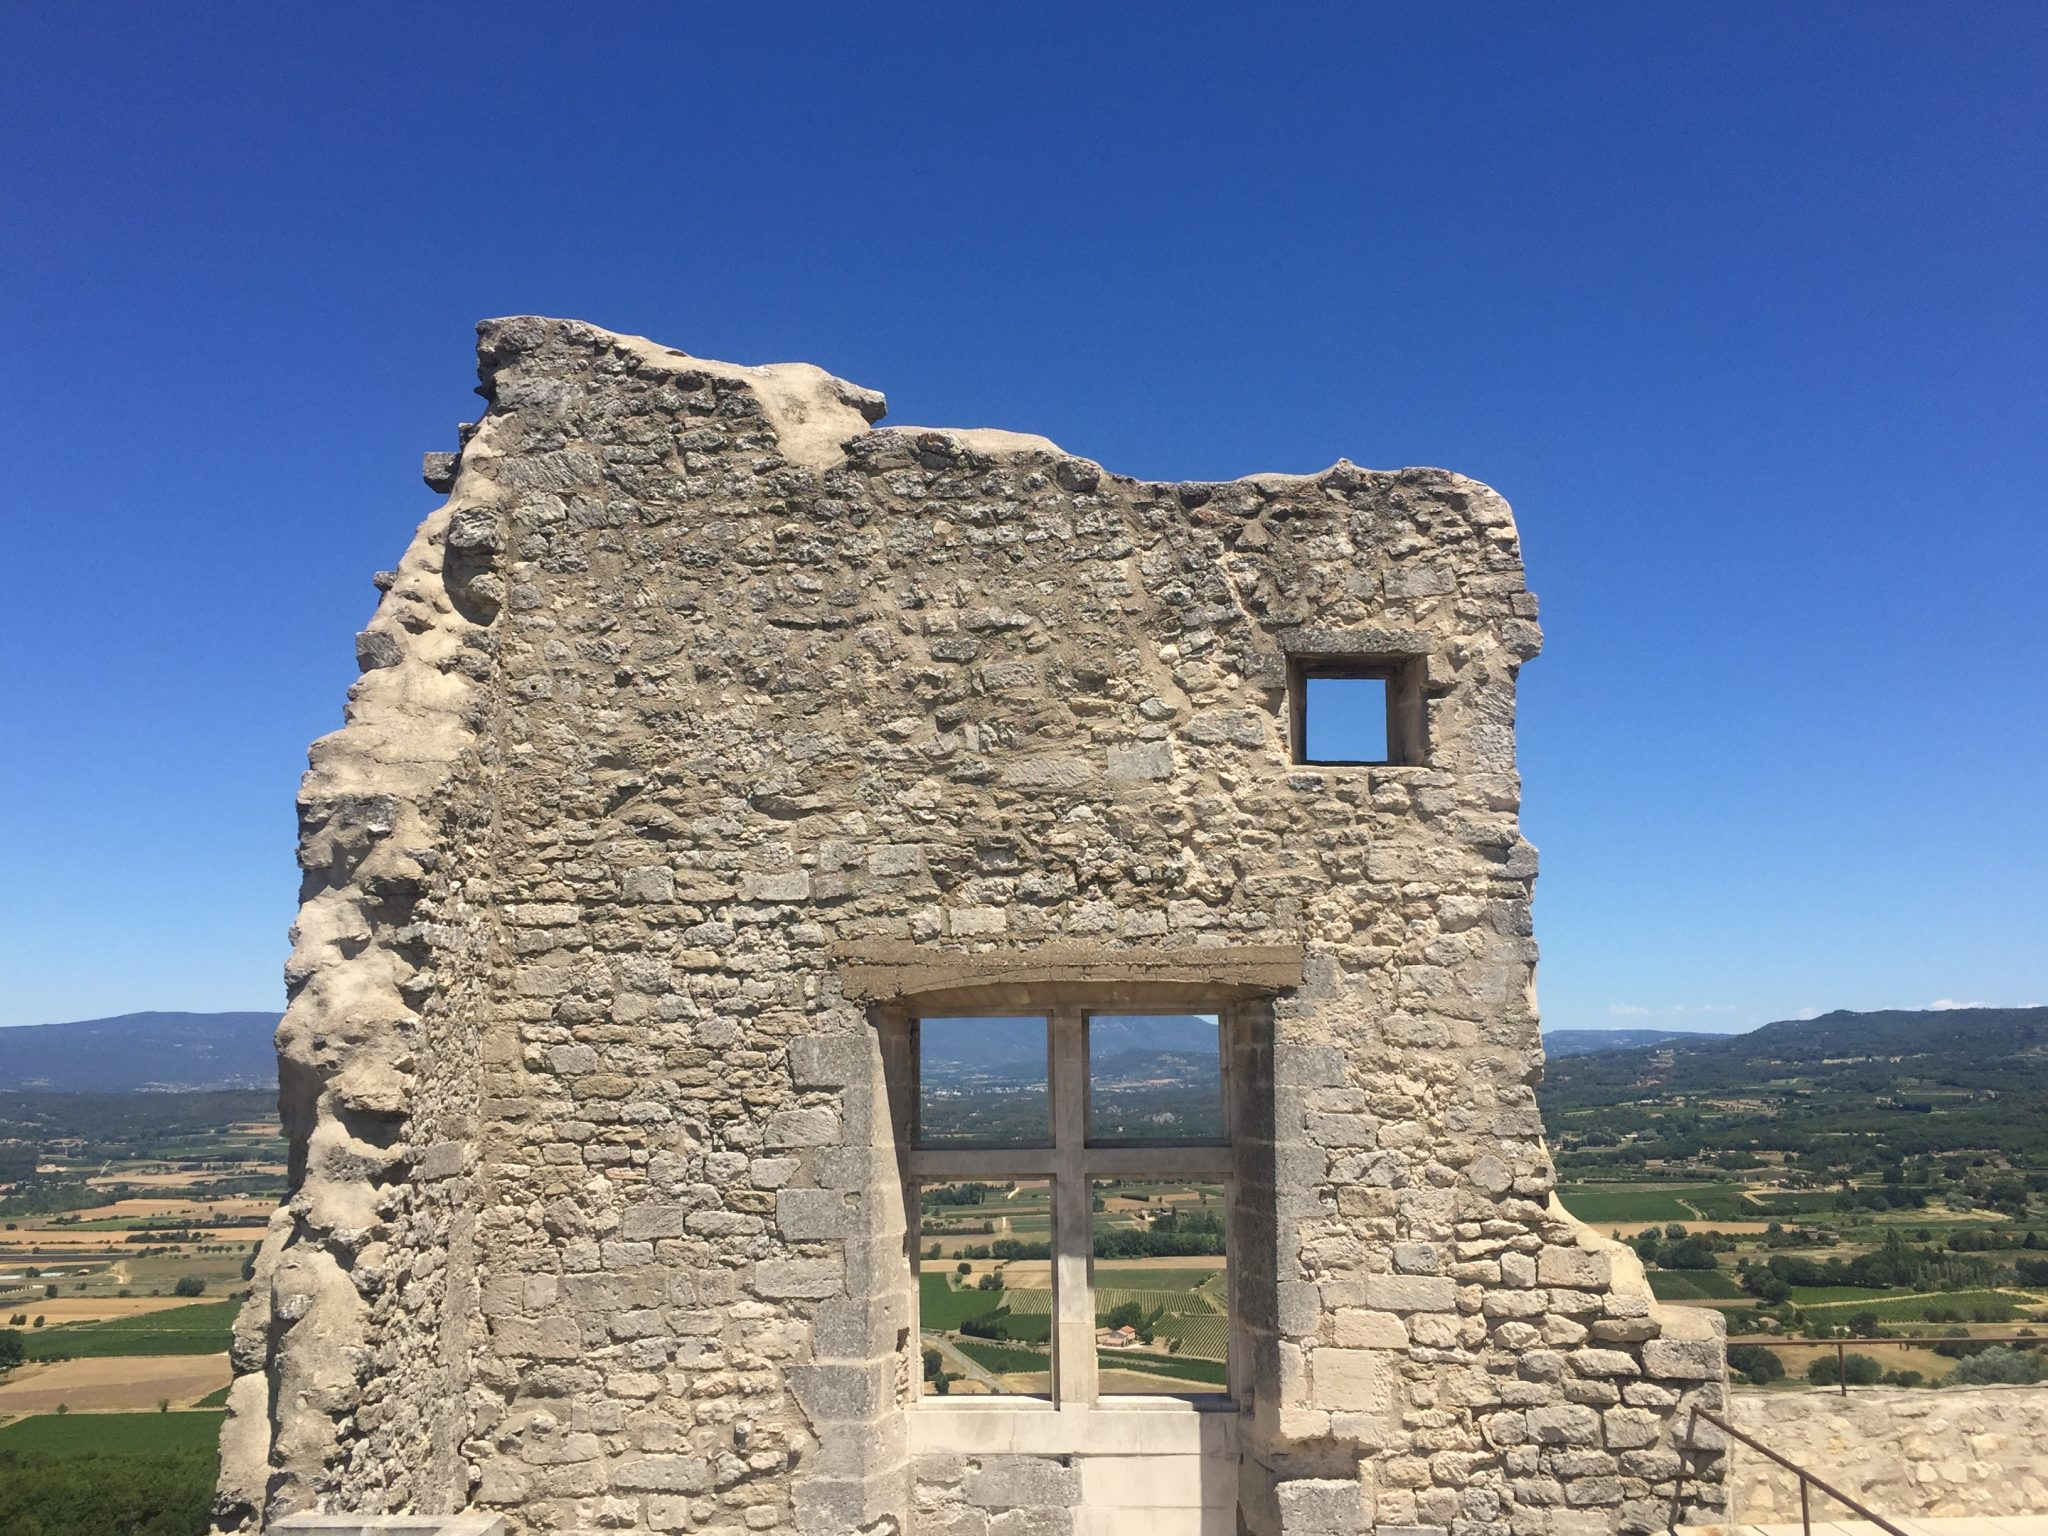 Luberon villages Provence France Lourmarin Rent-Our-Home rentourhomeinprovence Lacoste chateau